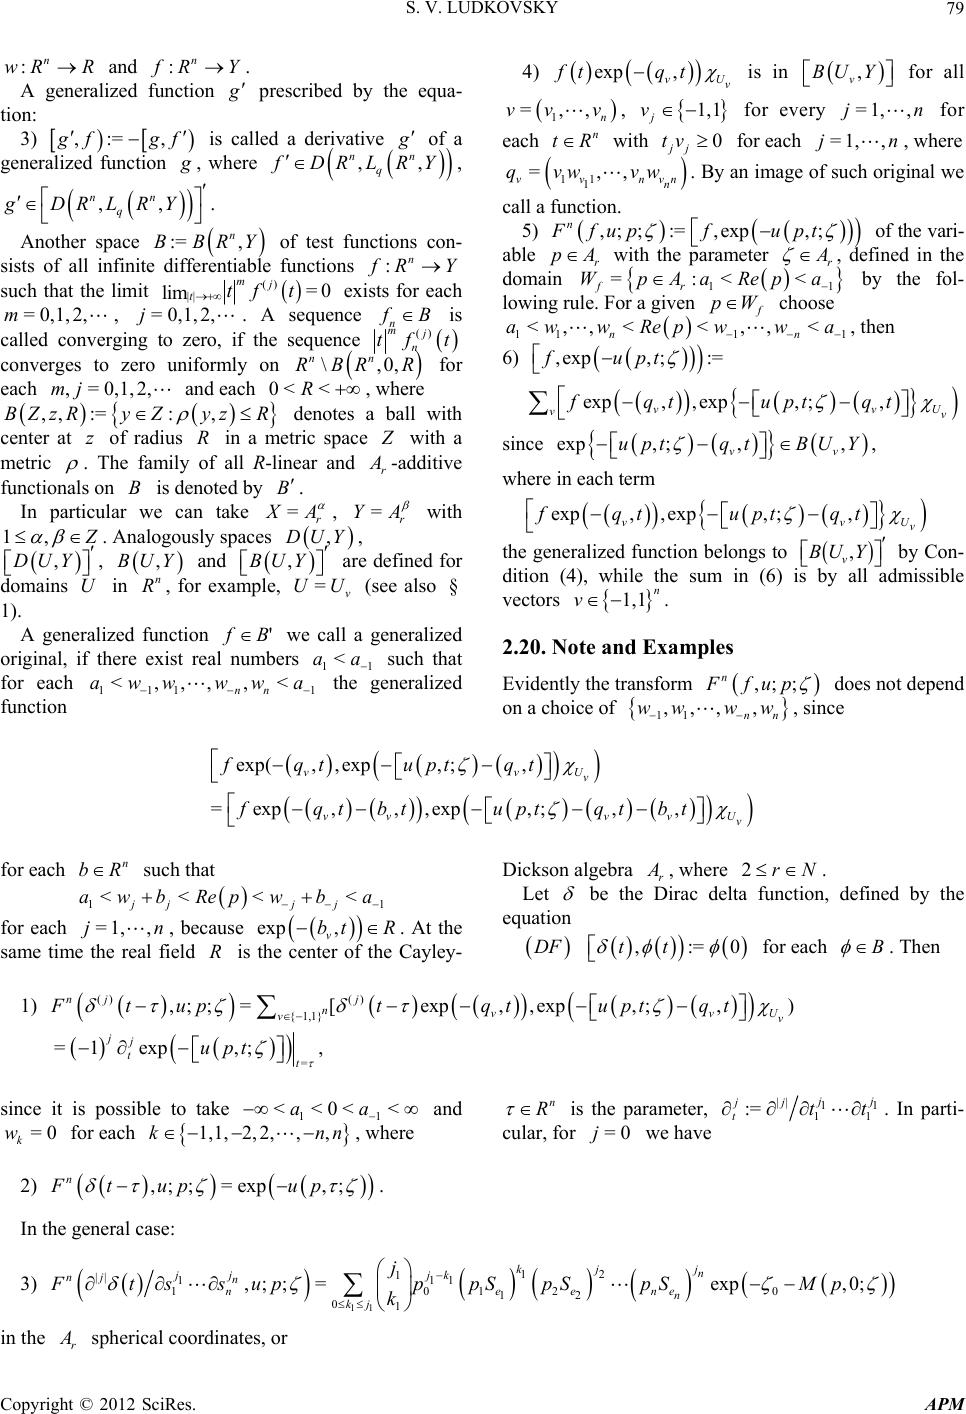 Multidimensional Laplace Transforms over Quaternions, Octonions and